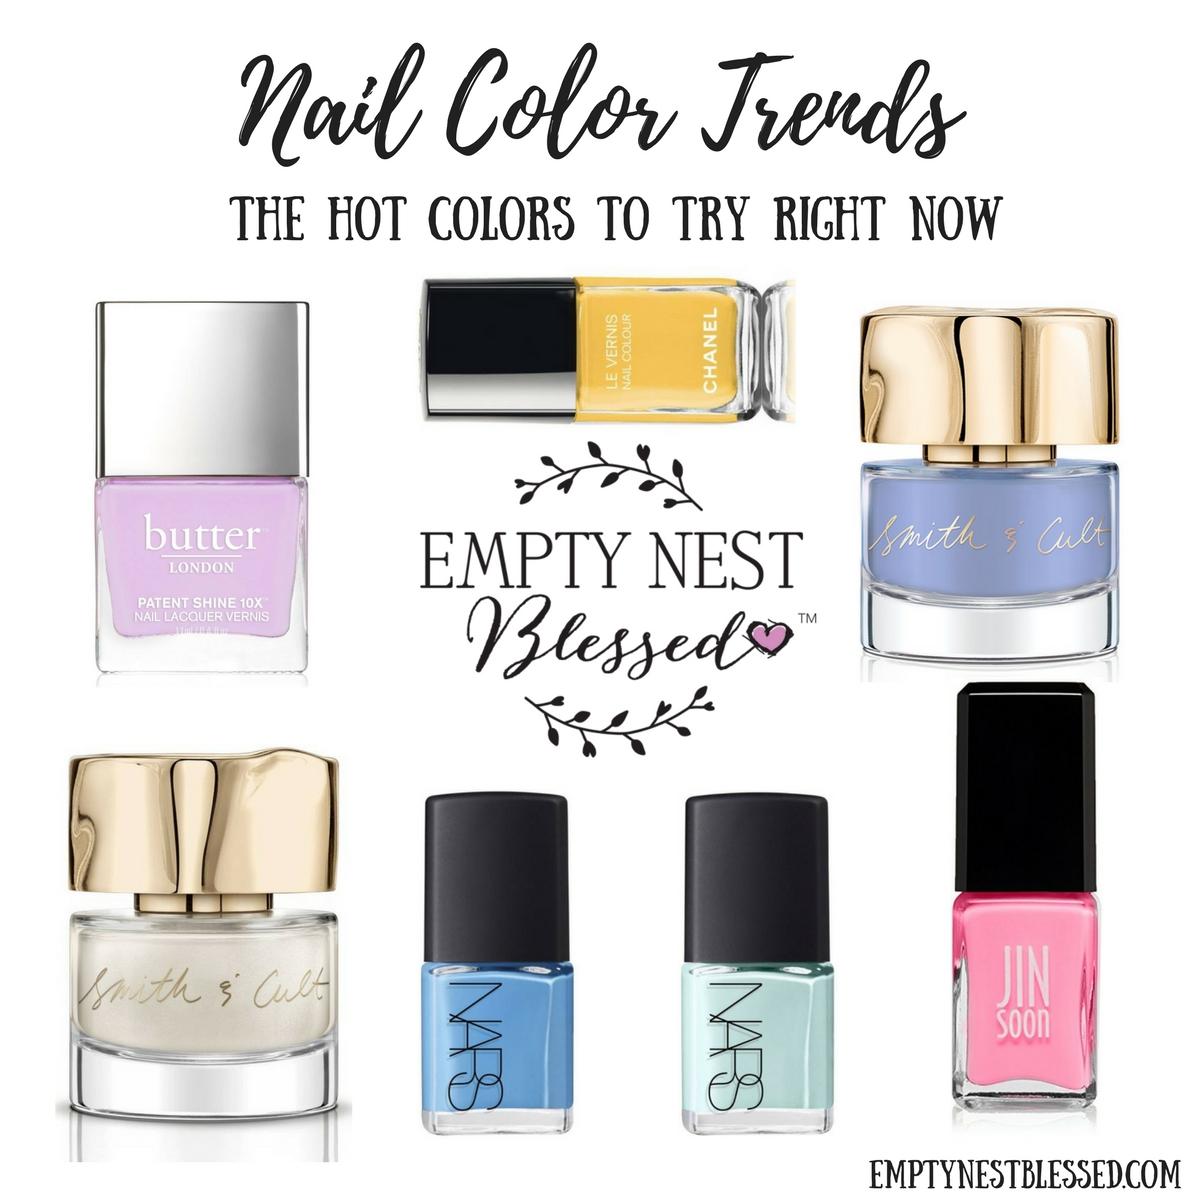 Nailed it! Five Hot Nail Color Trends to Try Right Now